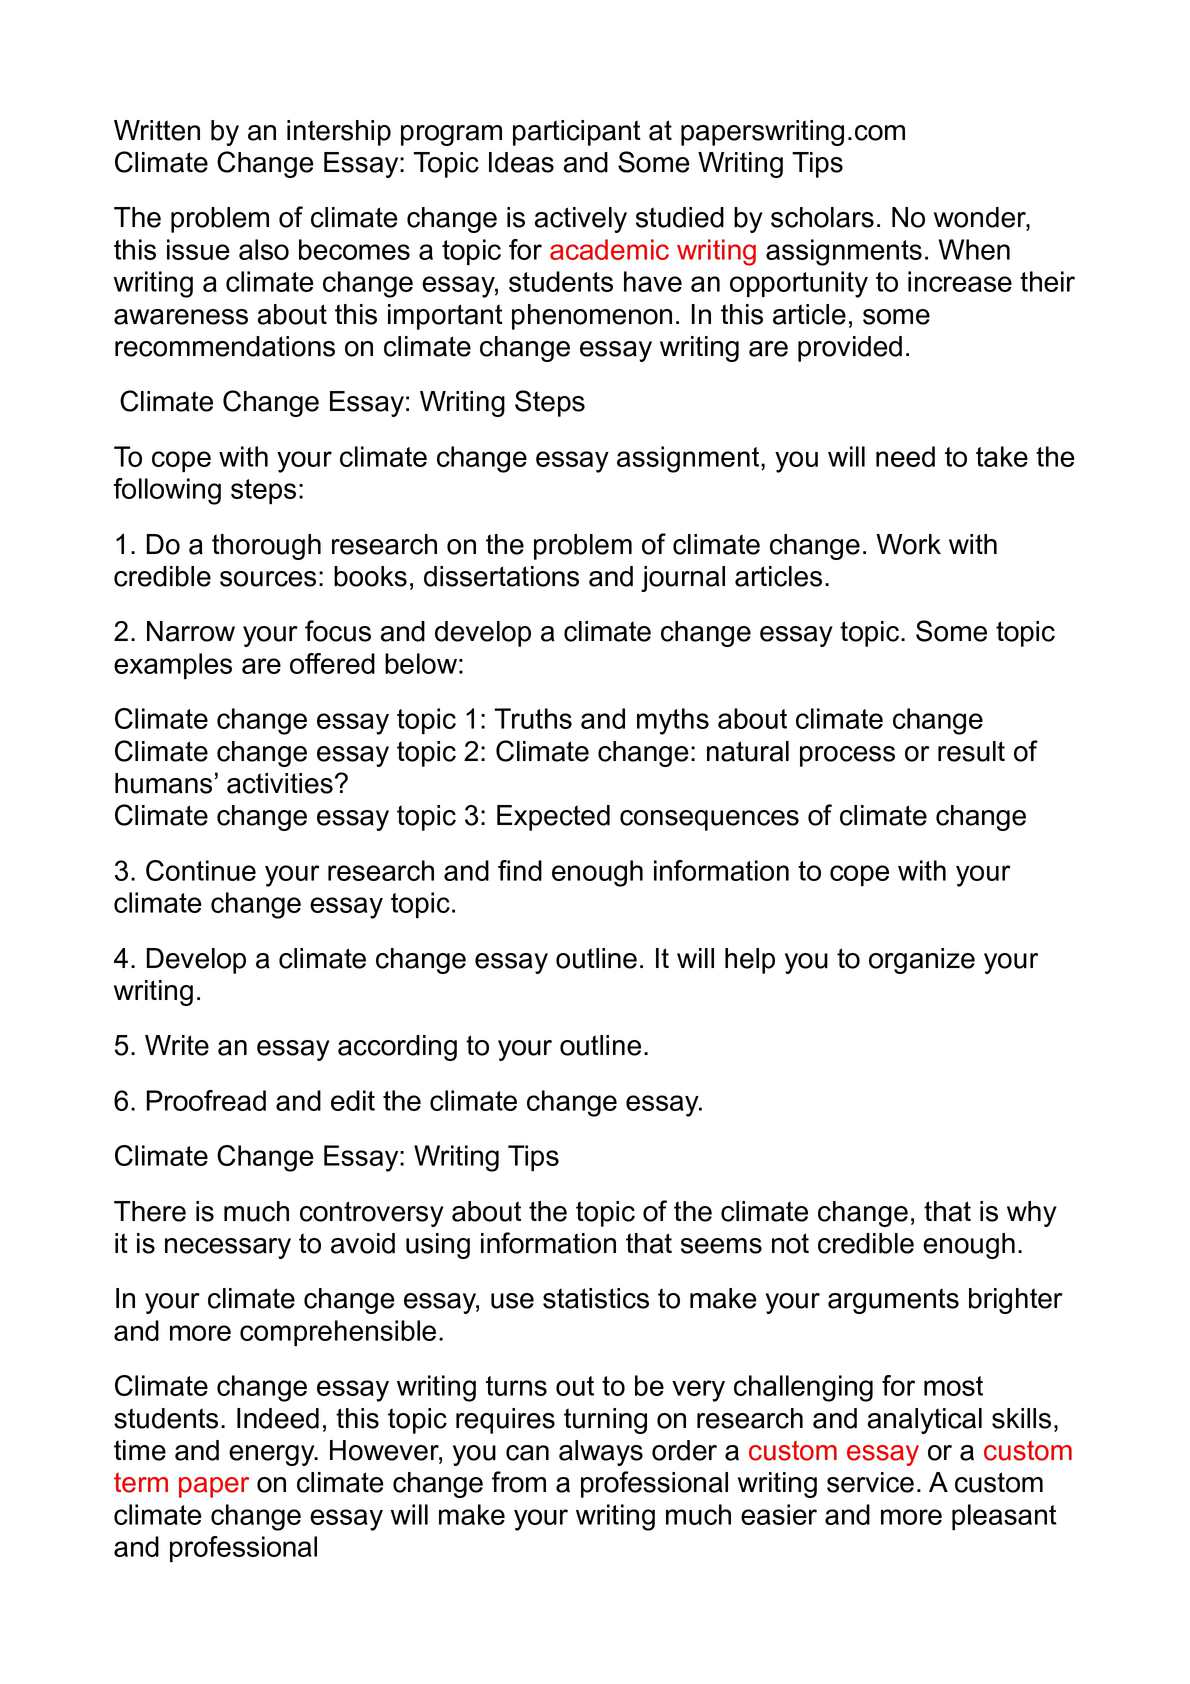 global warming essay outline a persuasive essay on global warming  essay for climate change calamatildecopyo climate change essay topic ideas and some writing tips